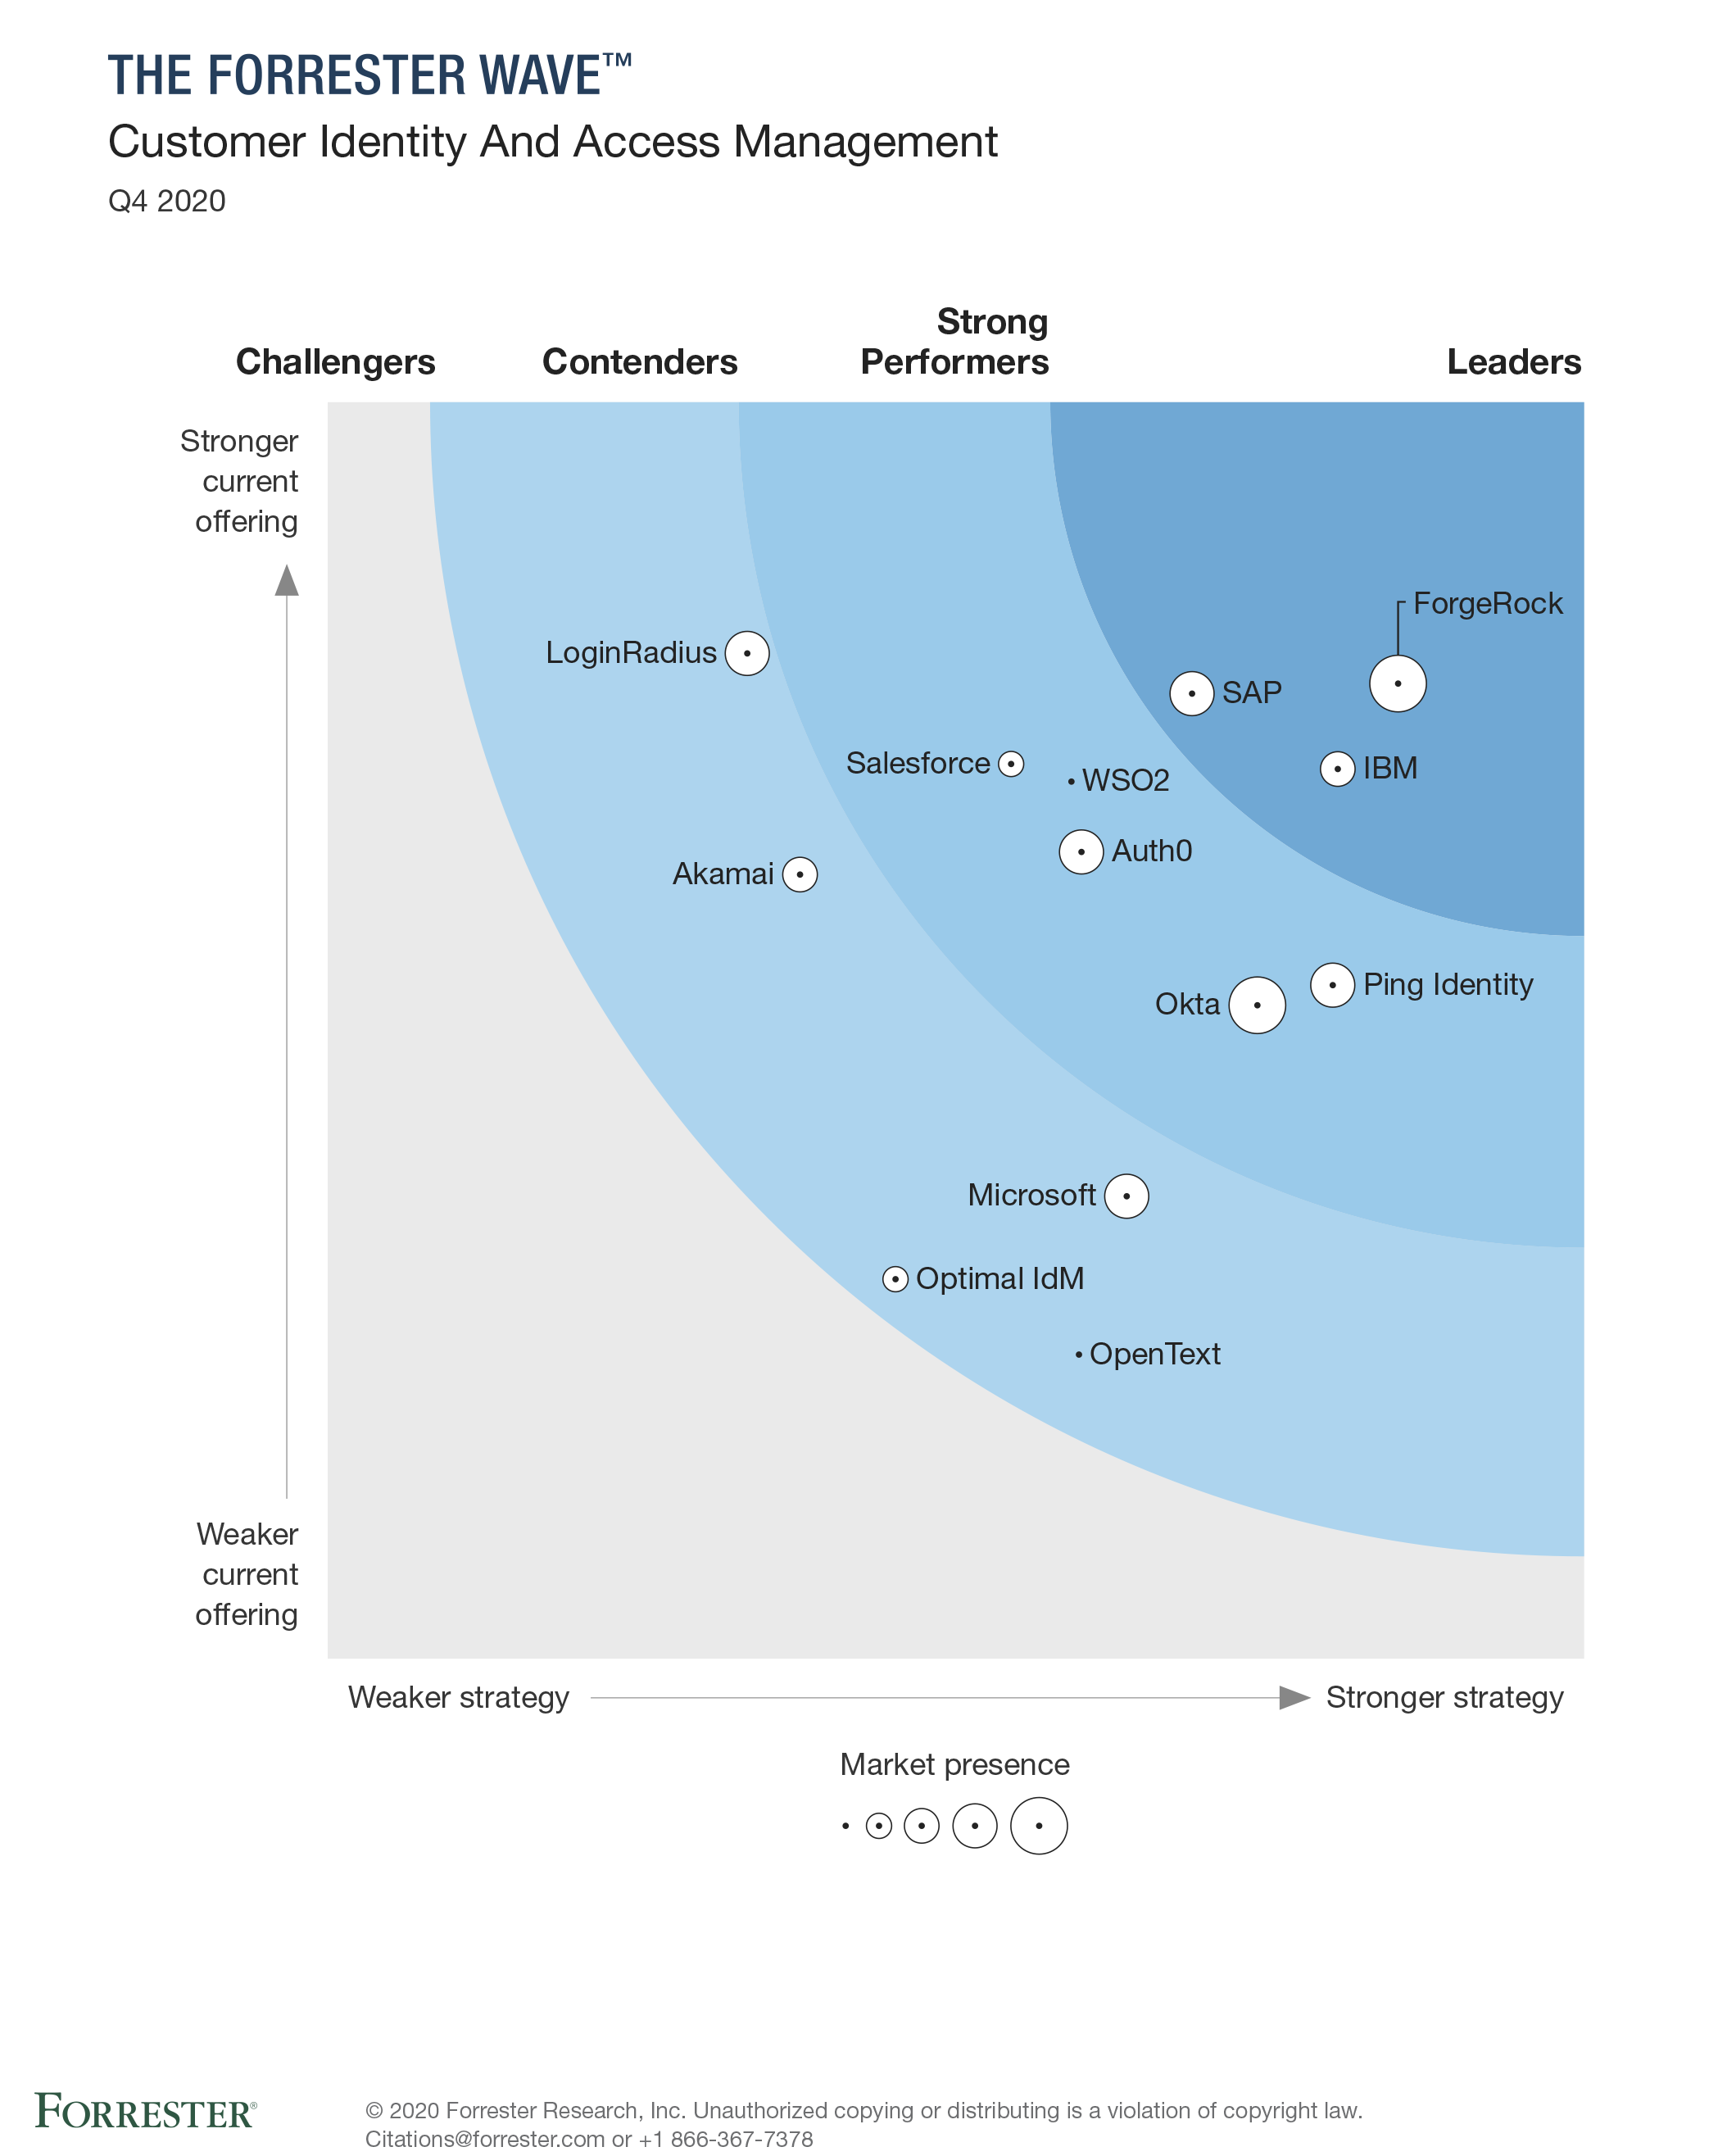 Forrester WaveTM: Customer Identity and Access Management, Q4 2020